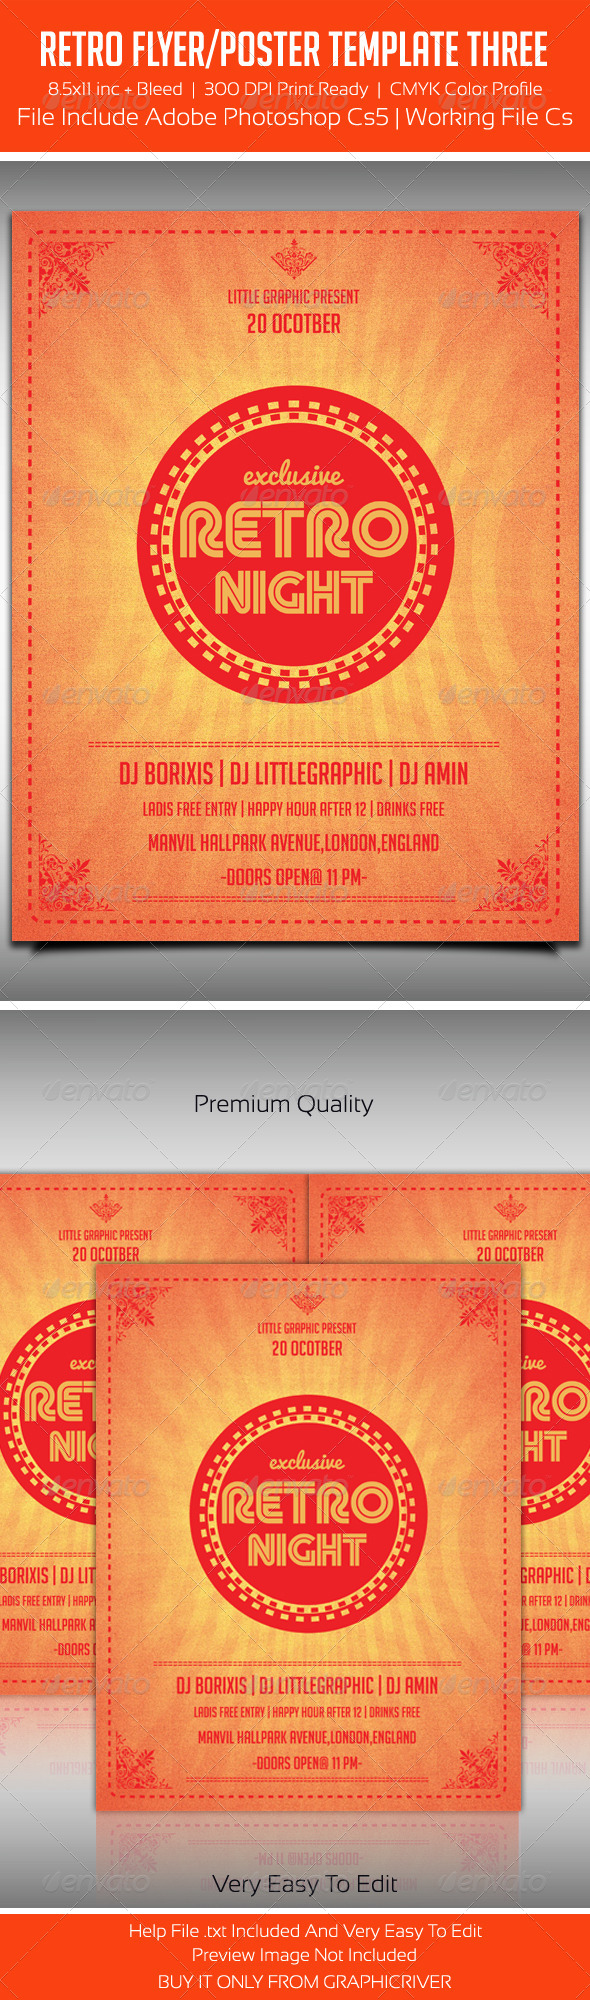 Typography Retro Party Flyer Template 3 - Clubs & Parties Events